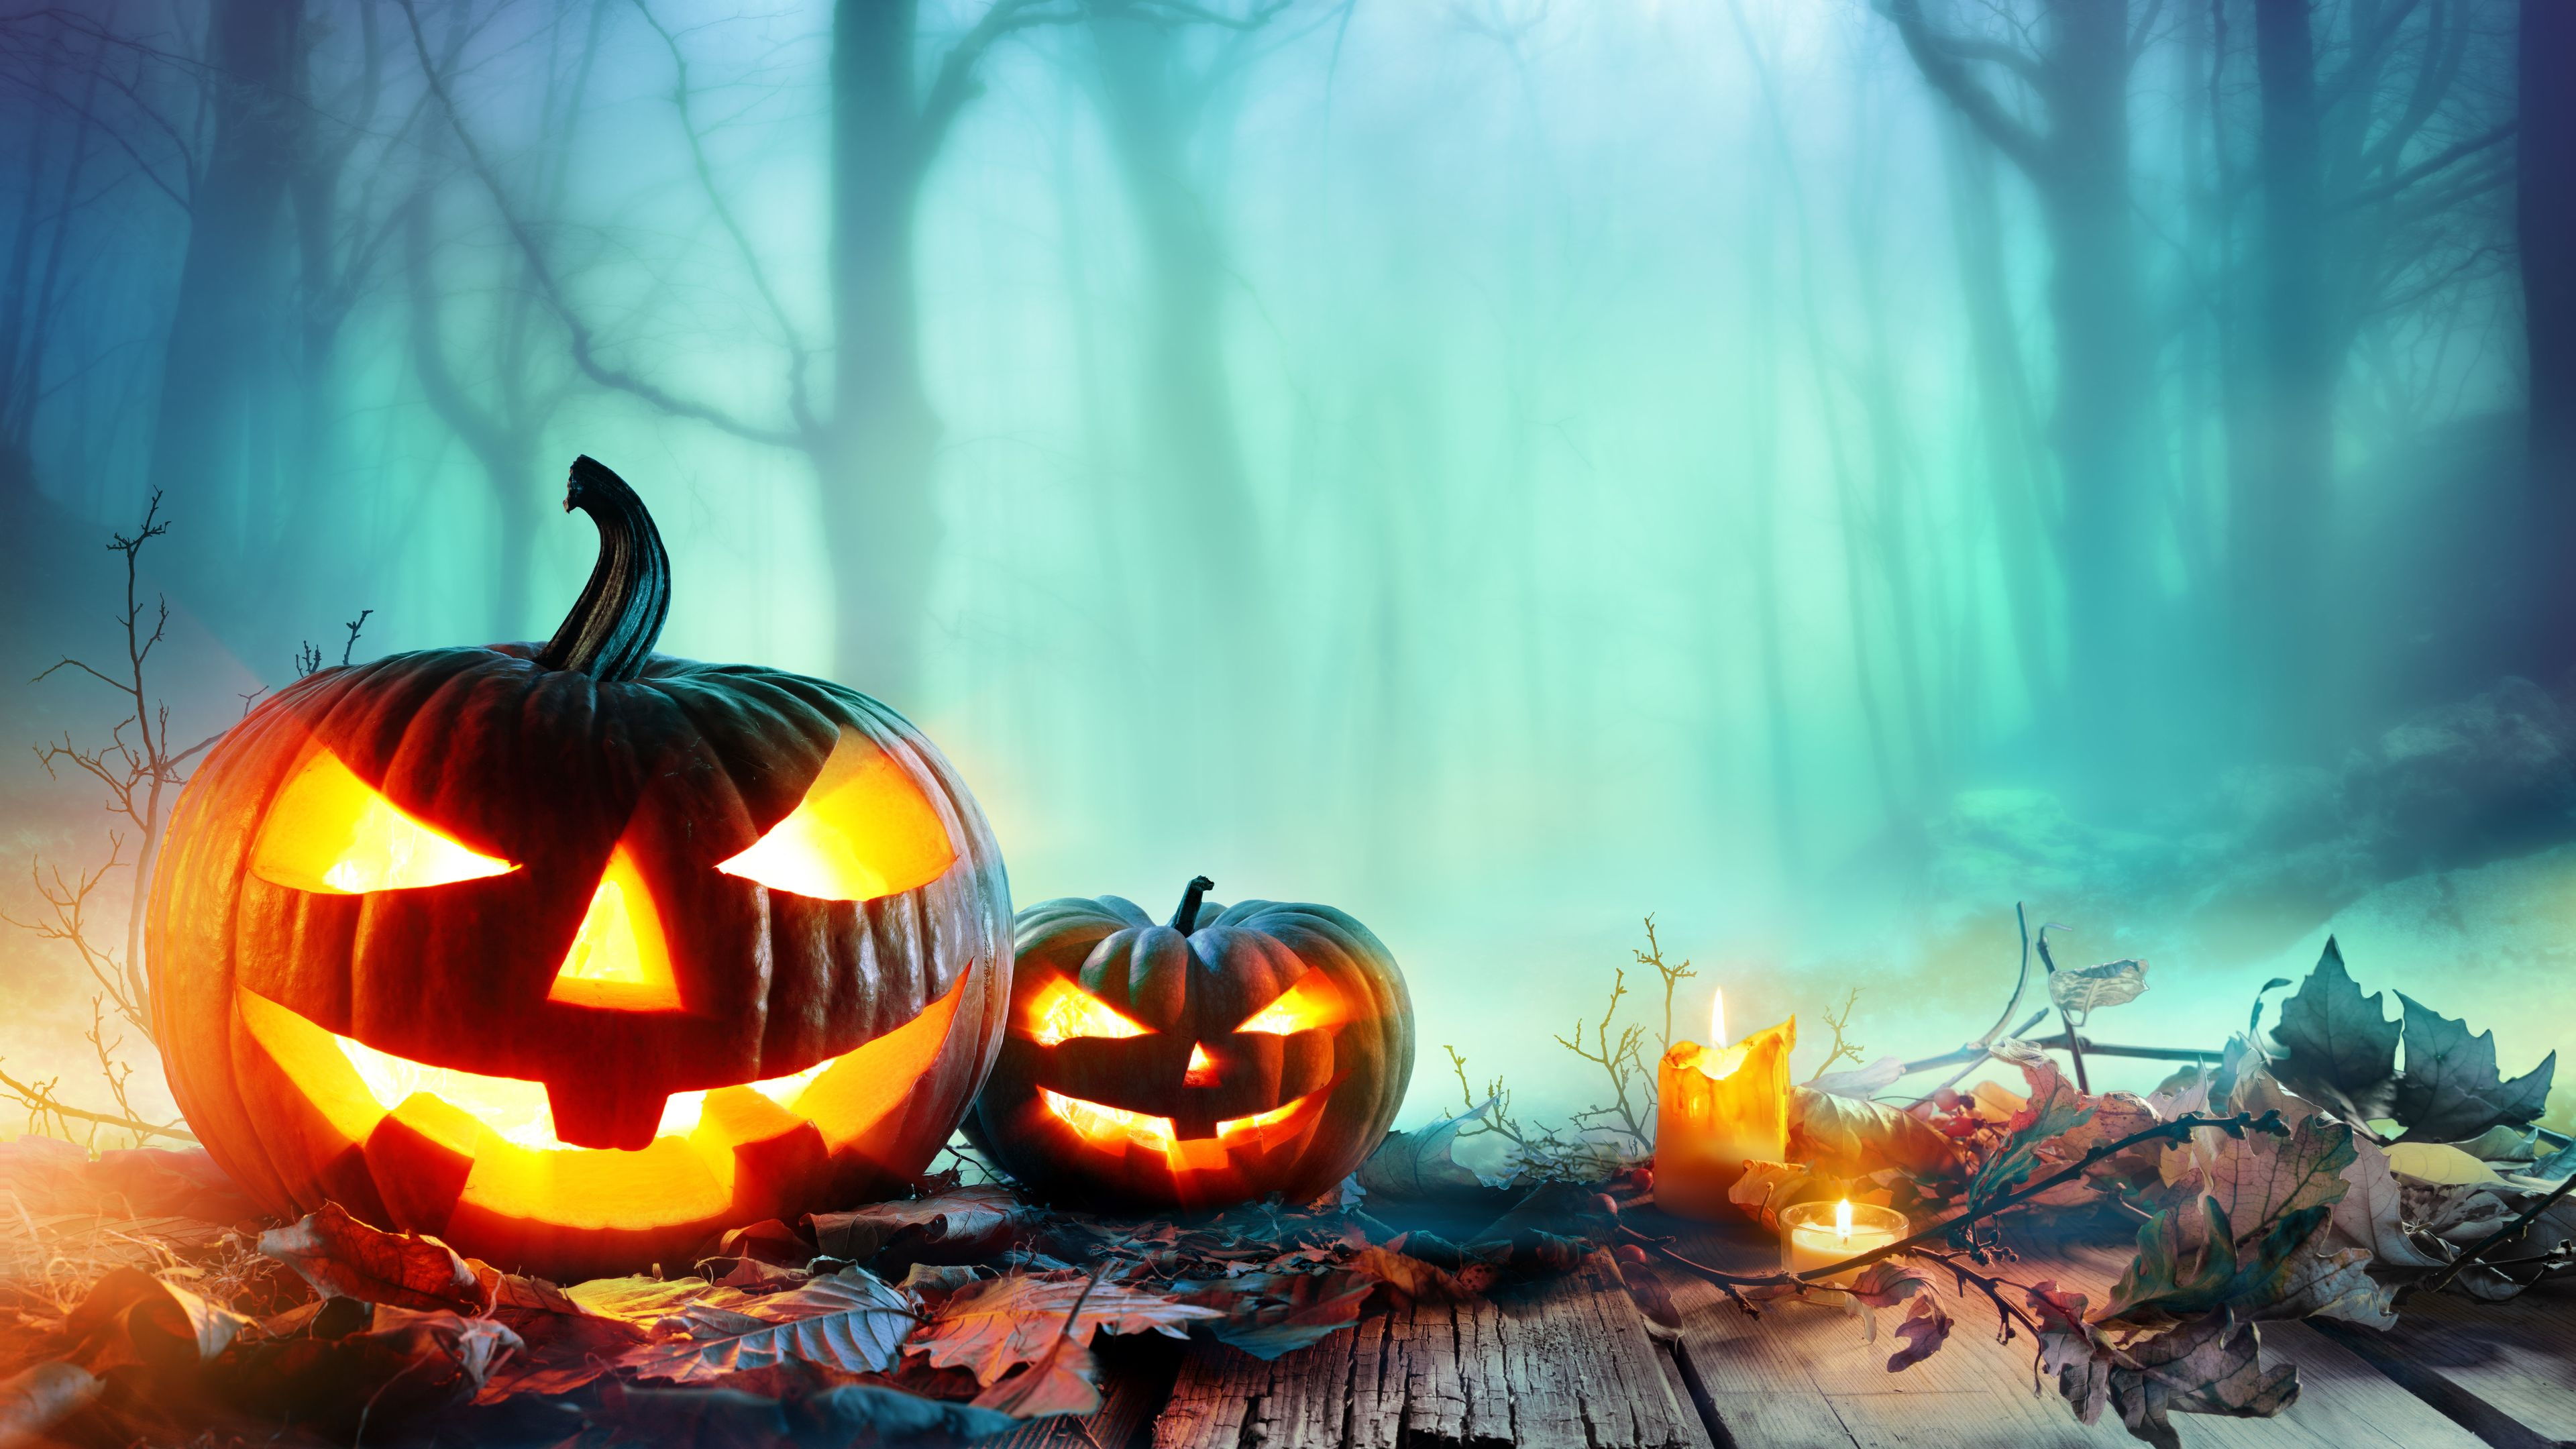 Wallpaper 4k 4k New Halloween 4k Wallpapers 5k Wallpapers